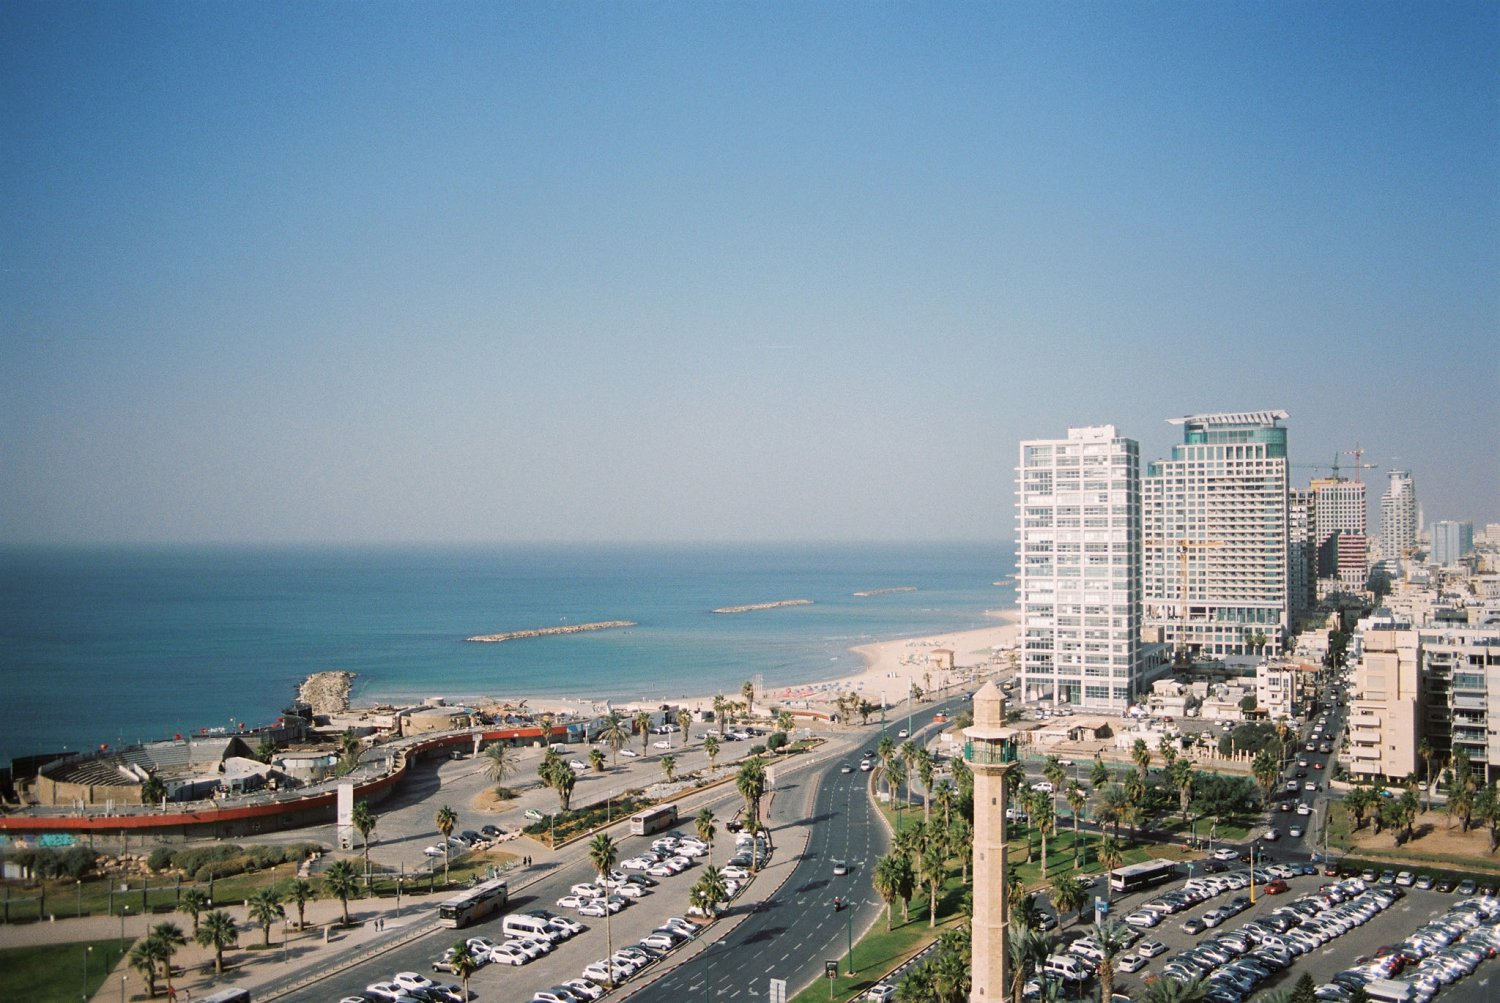 View of Tel Aviv coastline as seen from David InterContinental Hotel